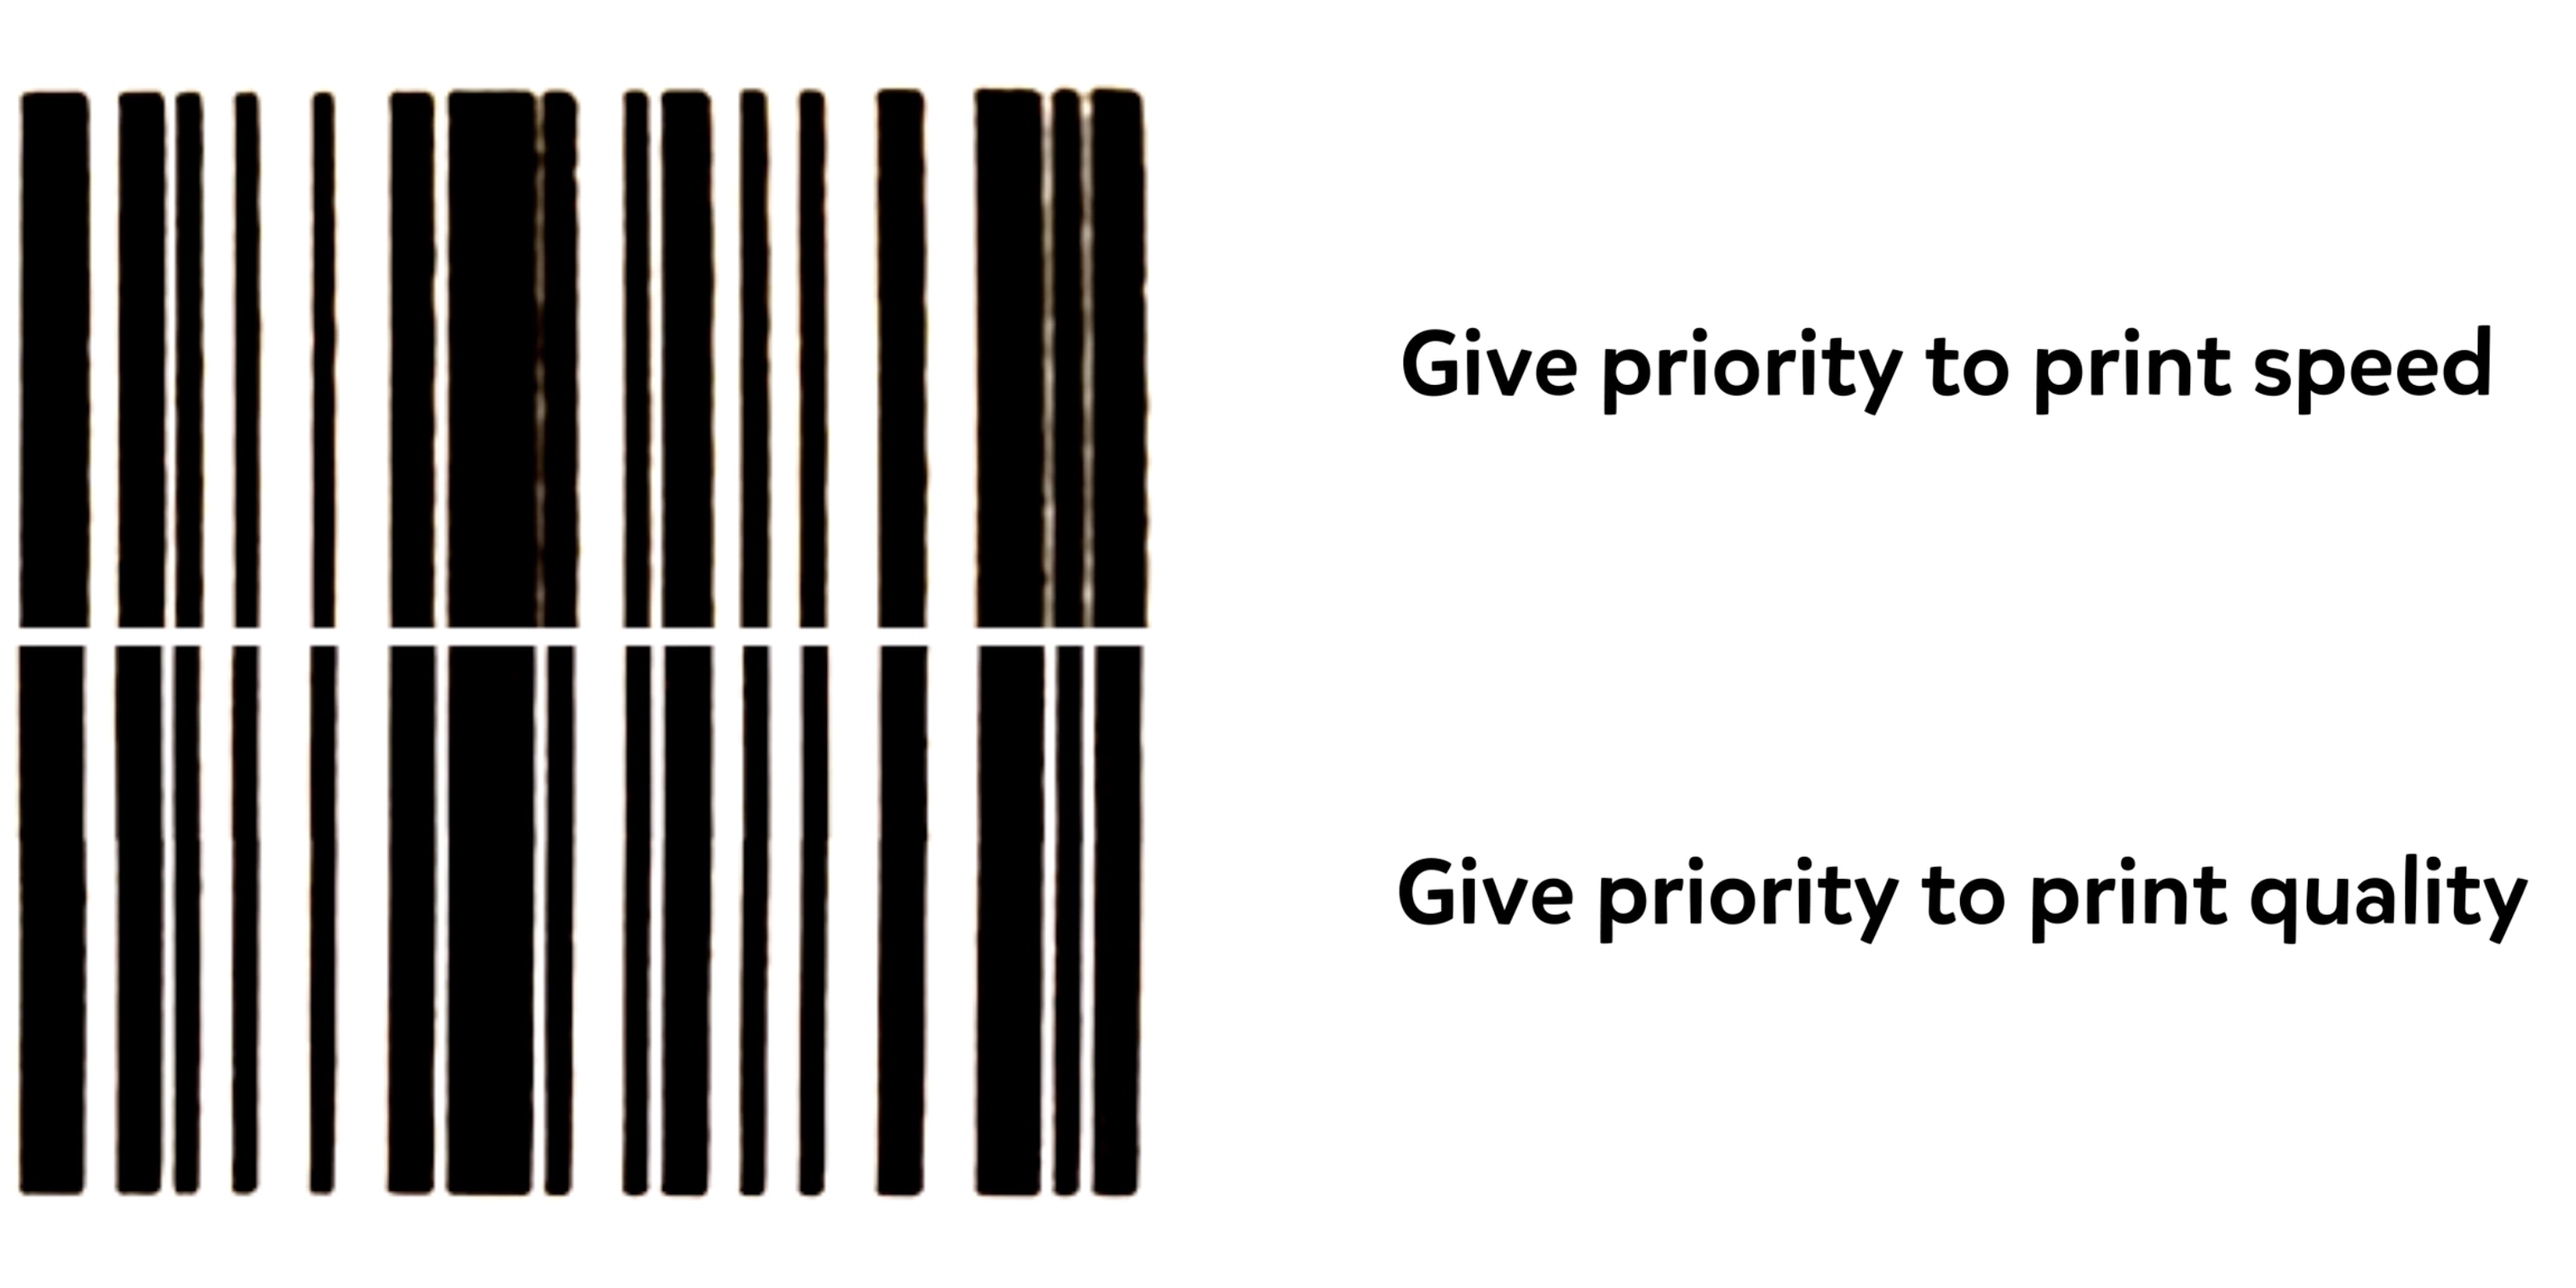 Two barcodes are shown to demonstrate the differences between giving priority to print speed, and giving priority to print quality. When print speed is prioritize, the barcode appears a little fuzzy and less clear. When print quality is prioritized, the barcode appears crisp.